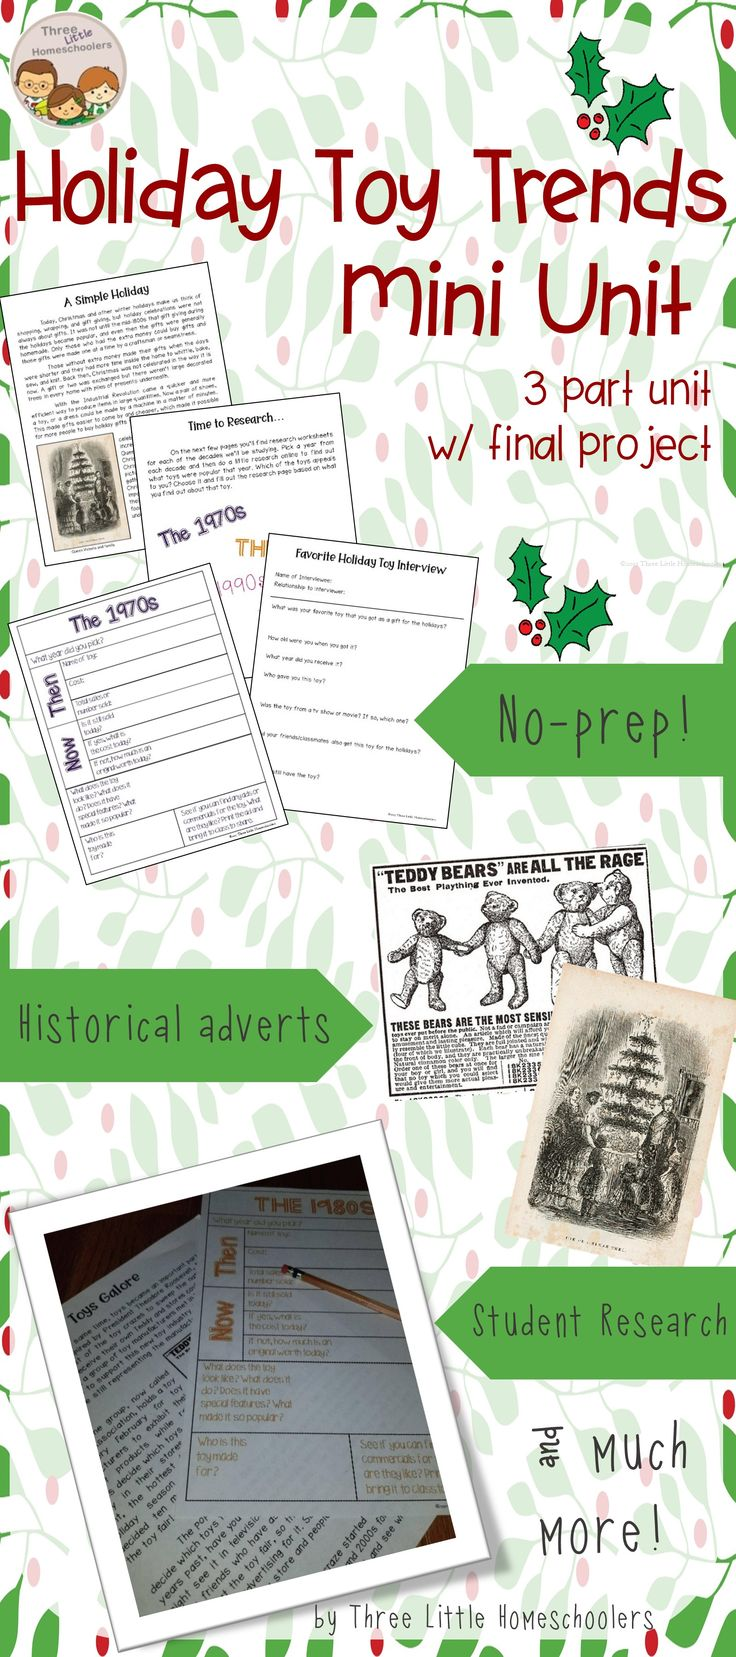 Thematic Holiday Unit for Middle and High School. Follows Christmas Toy Trends from 1970s-2000s. Includes reading passages, powerpoint, student worksheets, research project, and more!